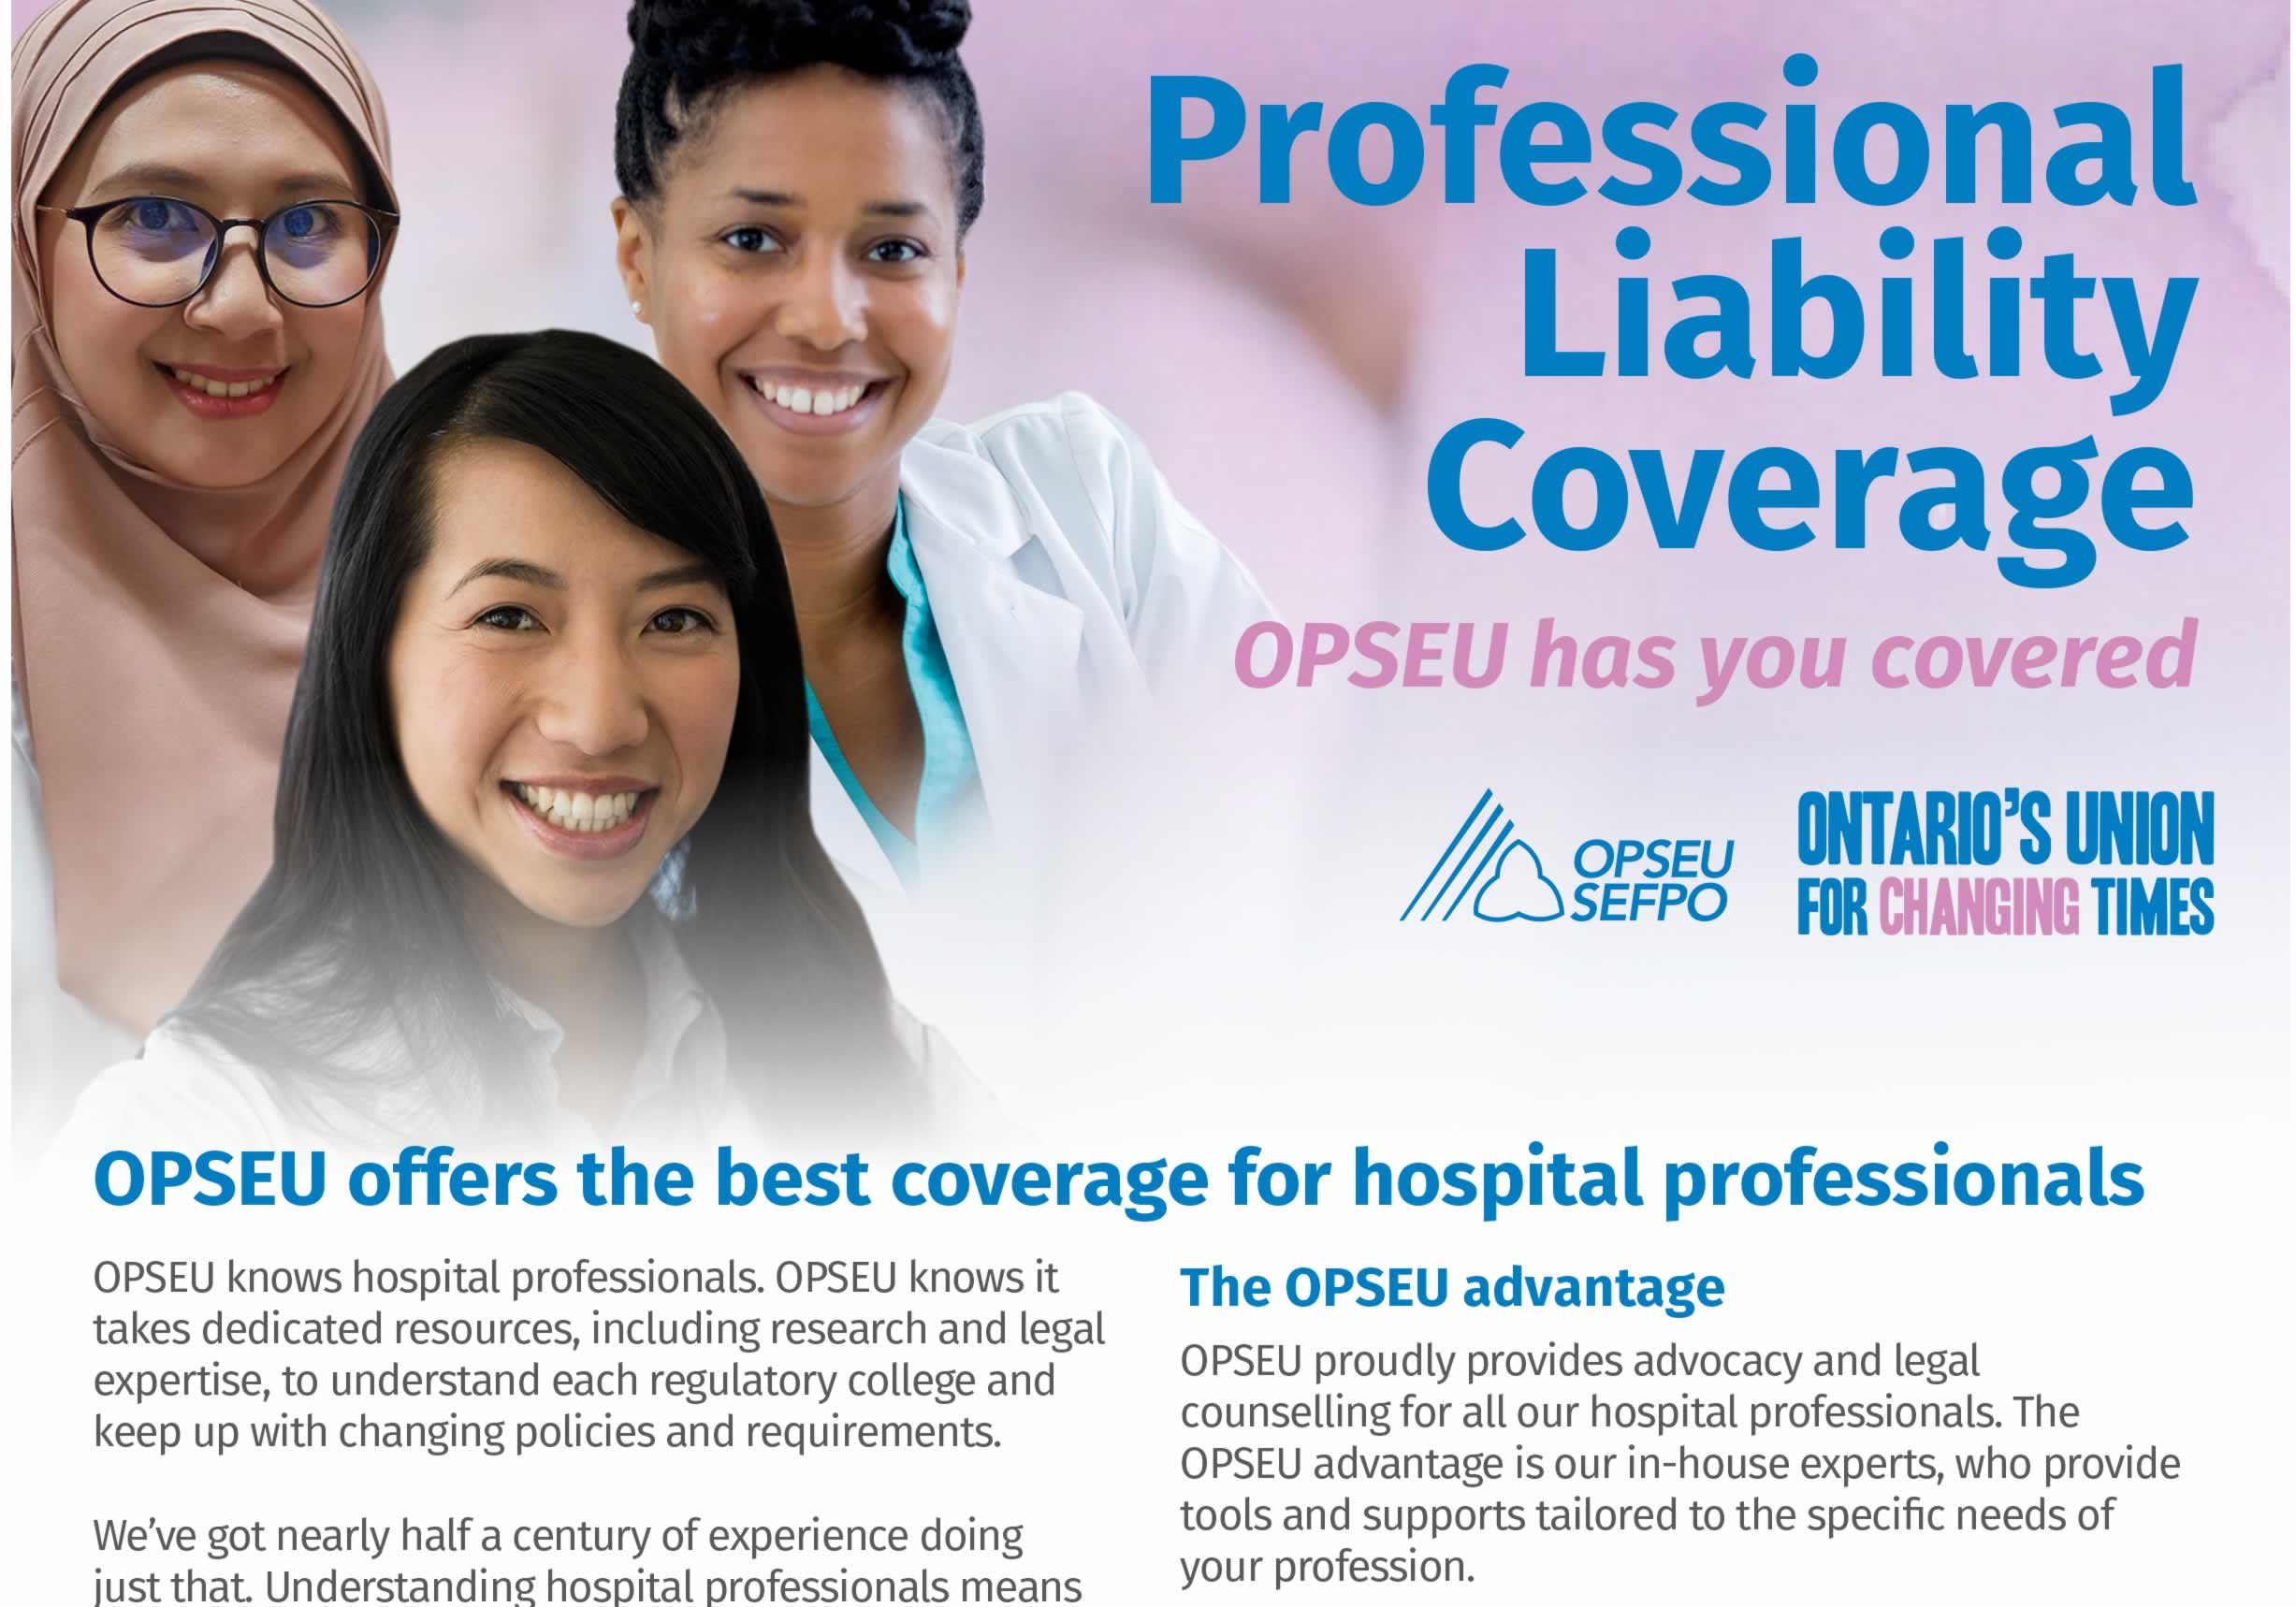 Professional Liability Coverage. OPSEU has you covered.